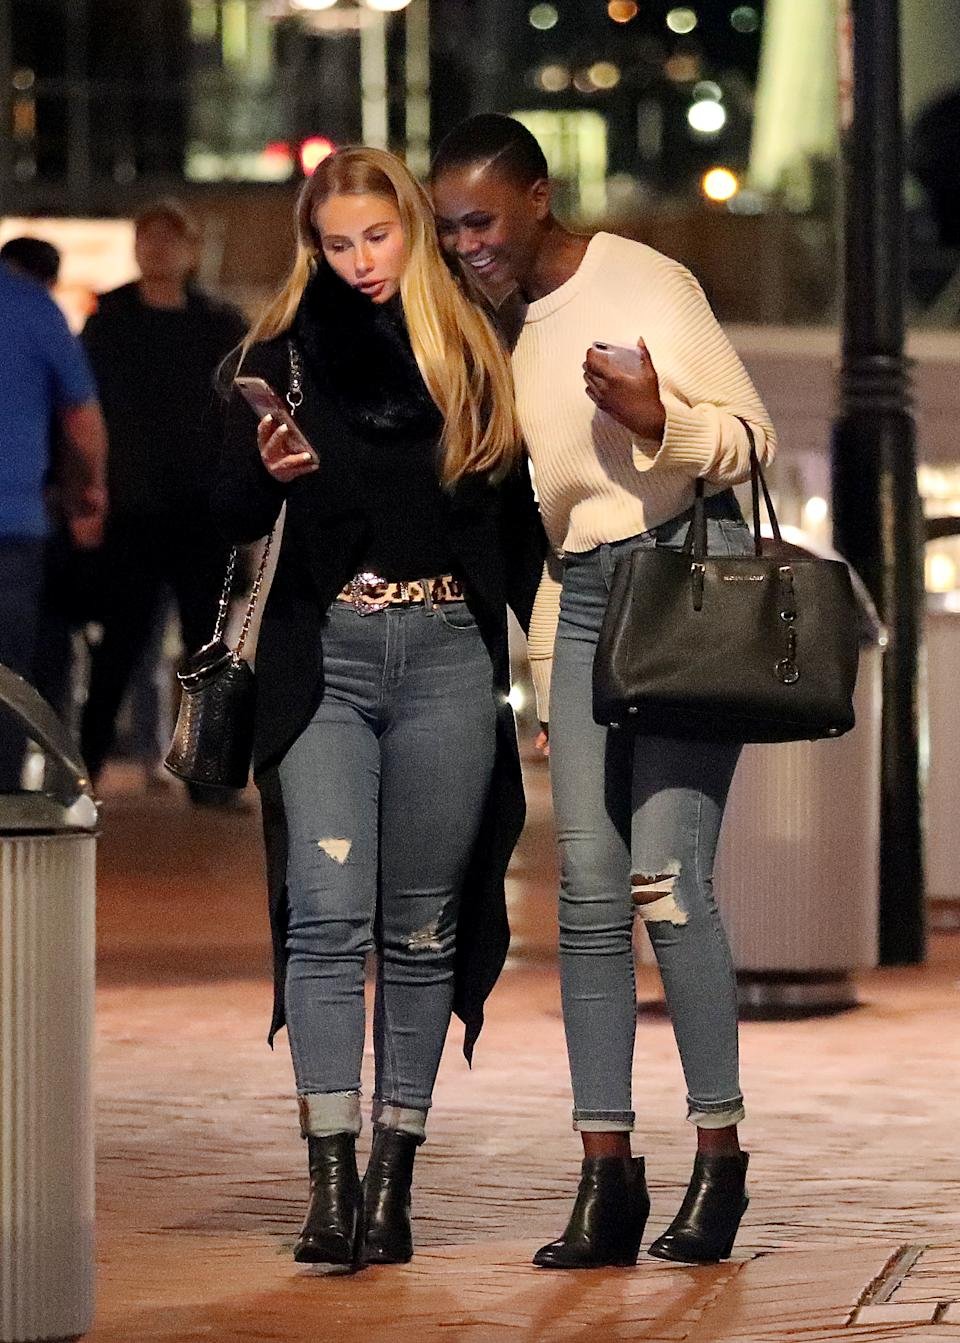 The reality stars were spotted during a night out in Sydney. Photo: Diimex